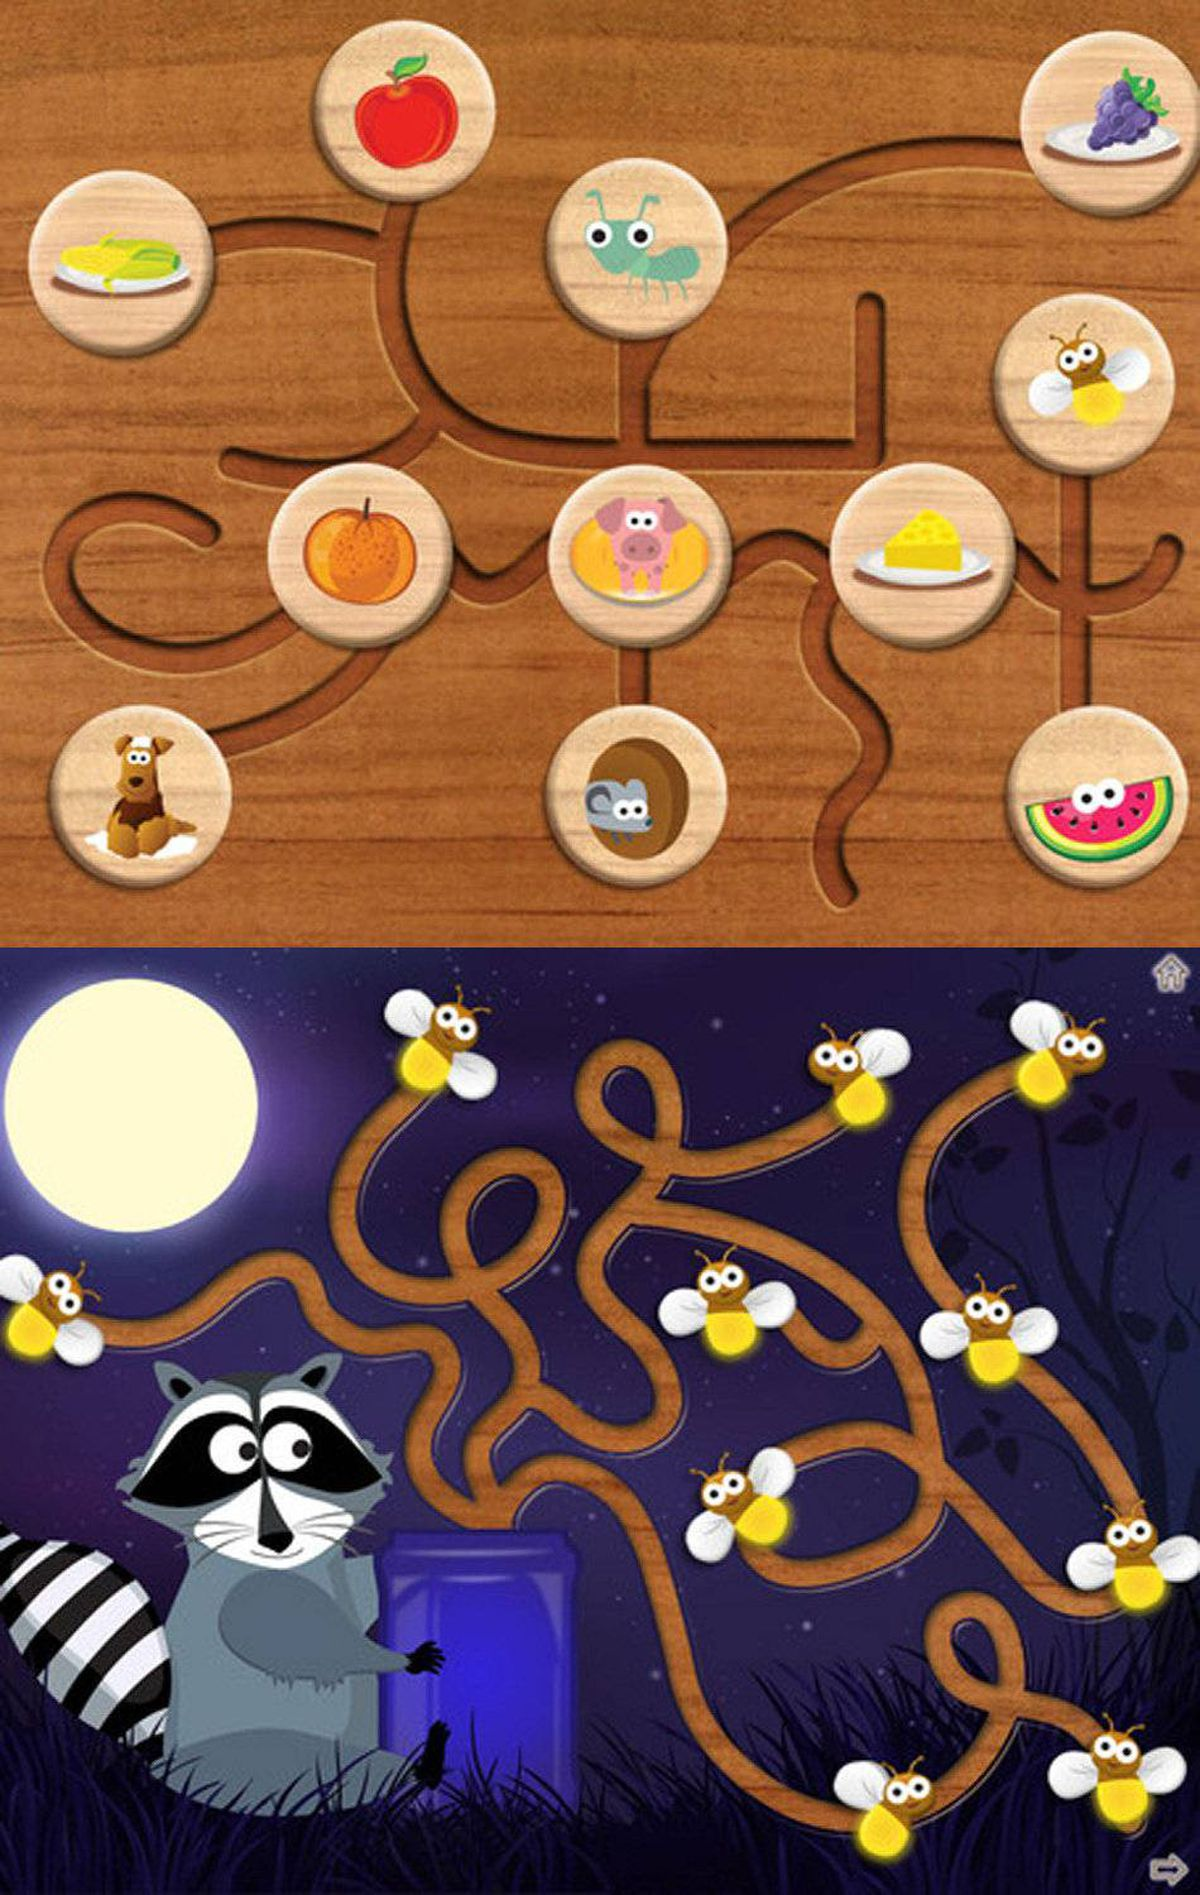 Wood Puzzle Maze HD (iPad) Most kindergarten classes have one or more wooden puzzle toys, with big chunky pieces that can be removed then replaced with a satisfying click. The best-selling Wooden Puzzle apps reproduce this experience virtually. This new app for iPad includes 14 different puzzles designed to help toddlers and preschoolers develop logic and fine motor skills. Slide the pieces through the maze just for fun, or to accomplish a puzzle objective -- feeding the animals, for example, or capturing fireflies in a jar. See the App Store for other Wood Puzzle apps with sports and holiday themes. ($1.99, http://www.tropisounds.com)